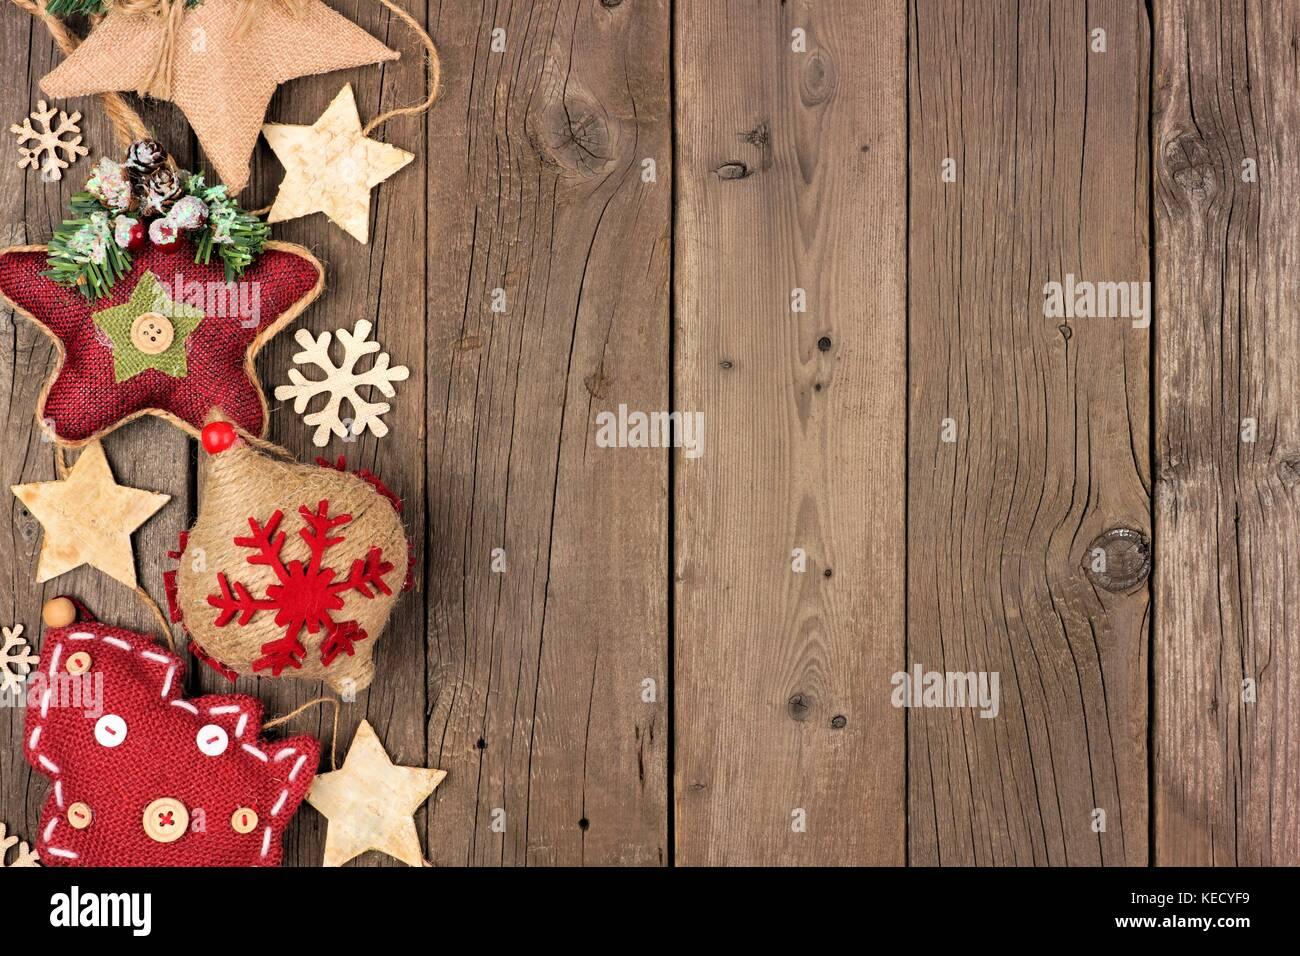 Rustic Christmas side border with wood ornaments and berries on an ...